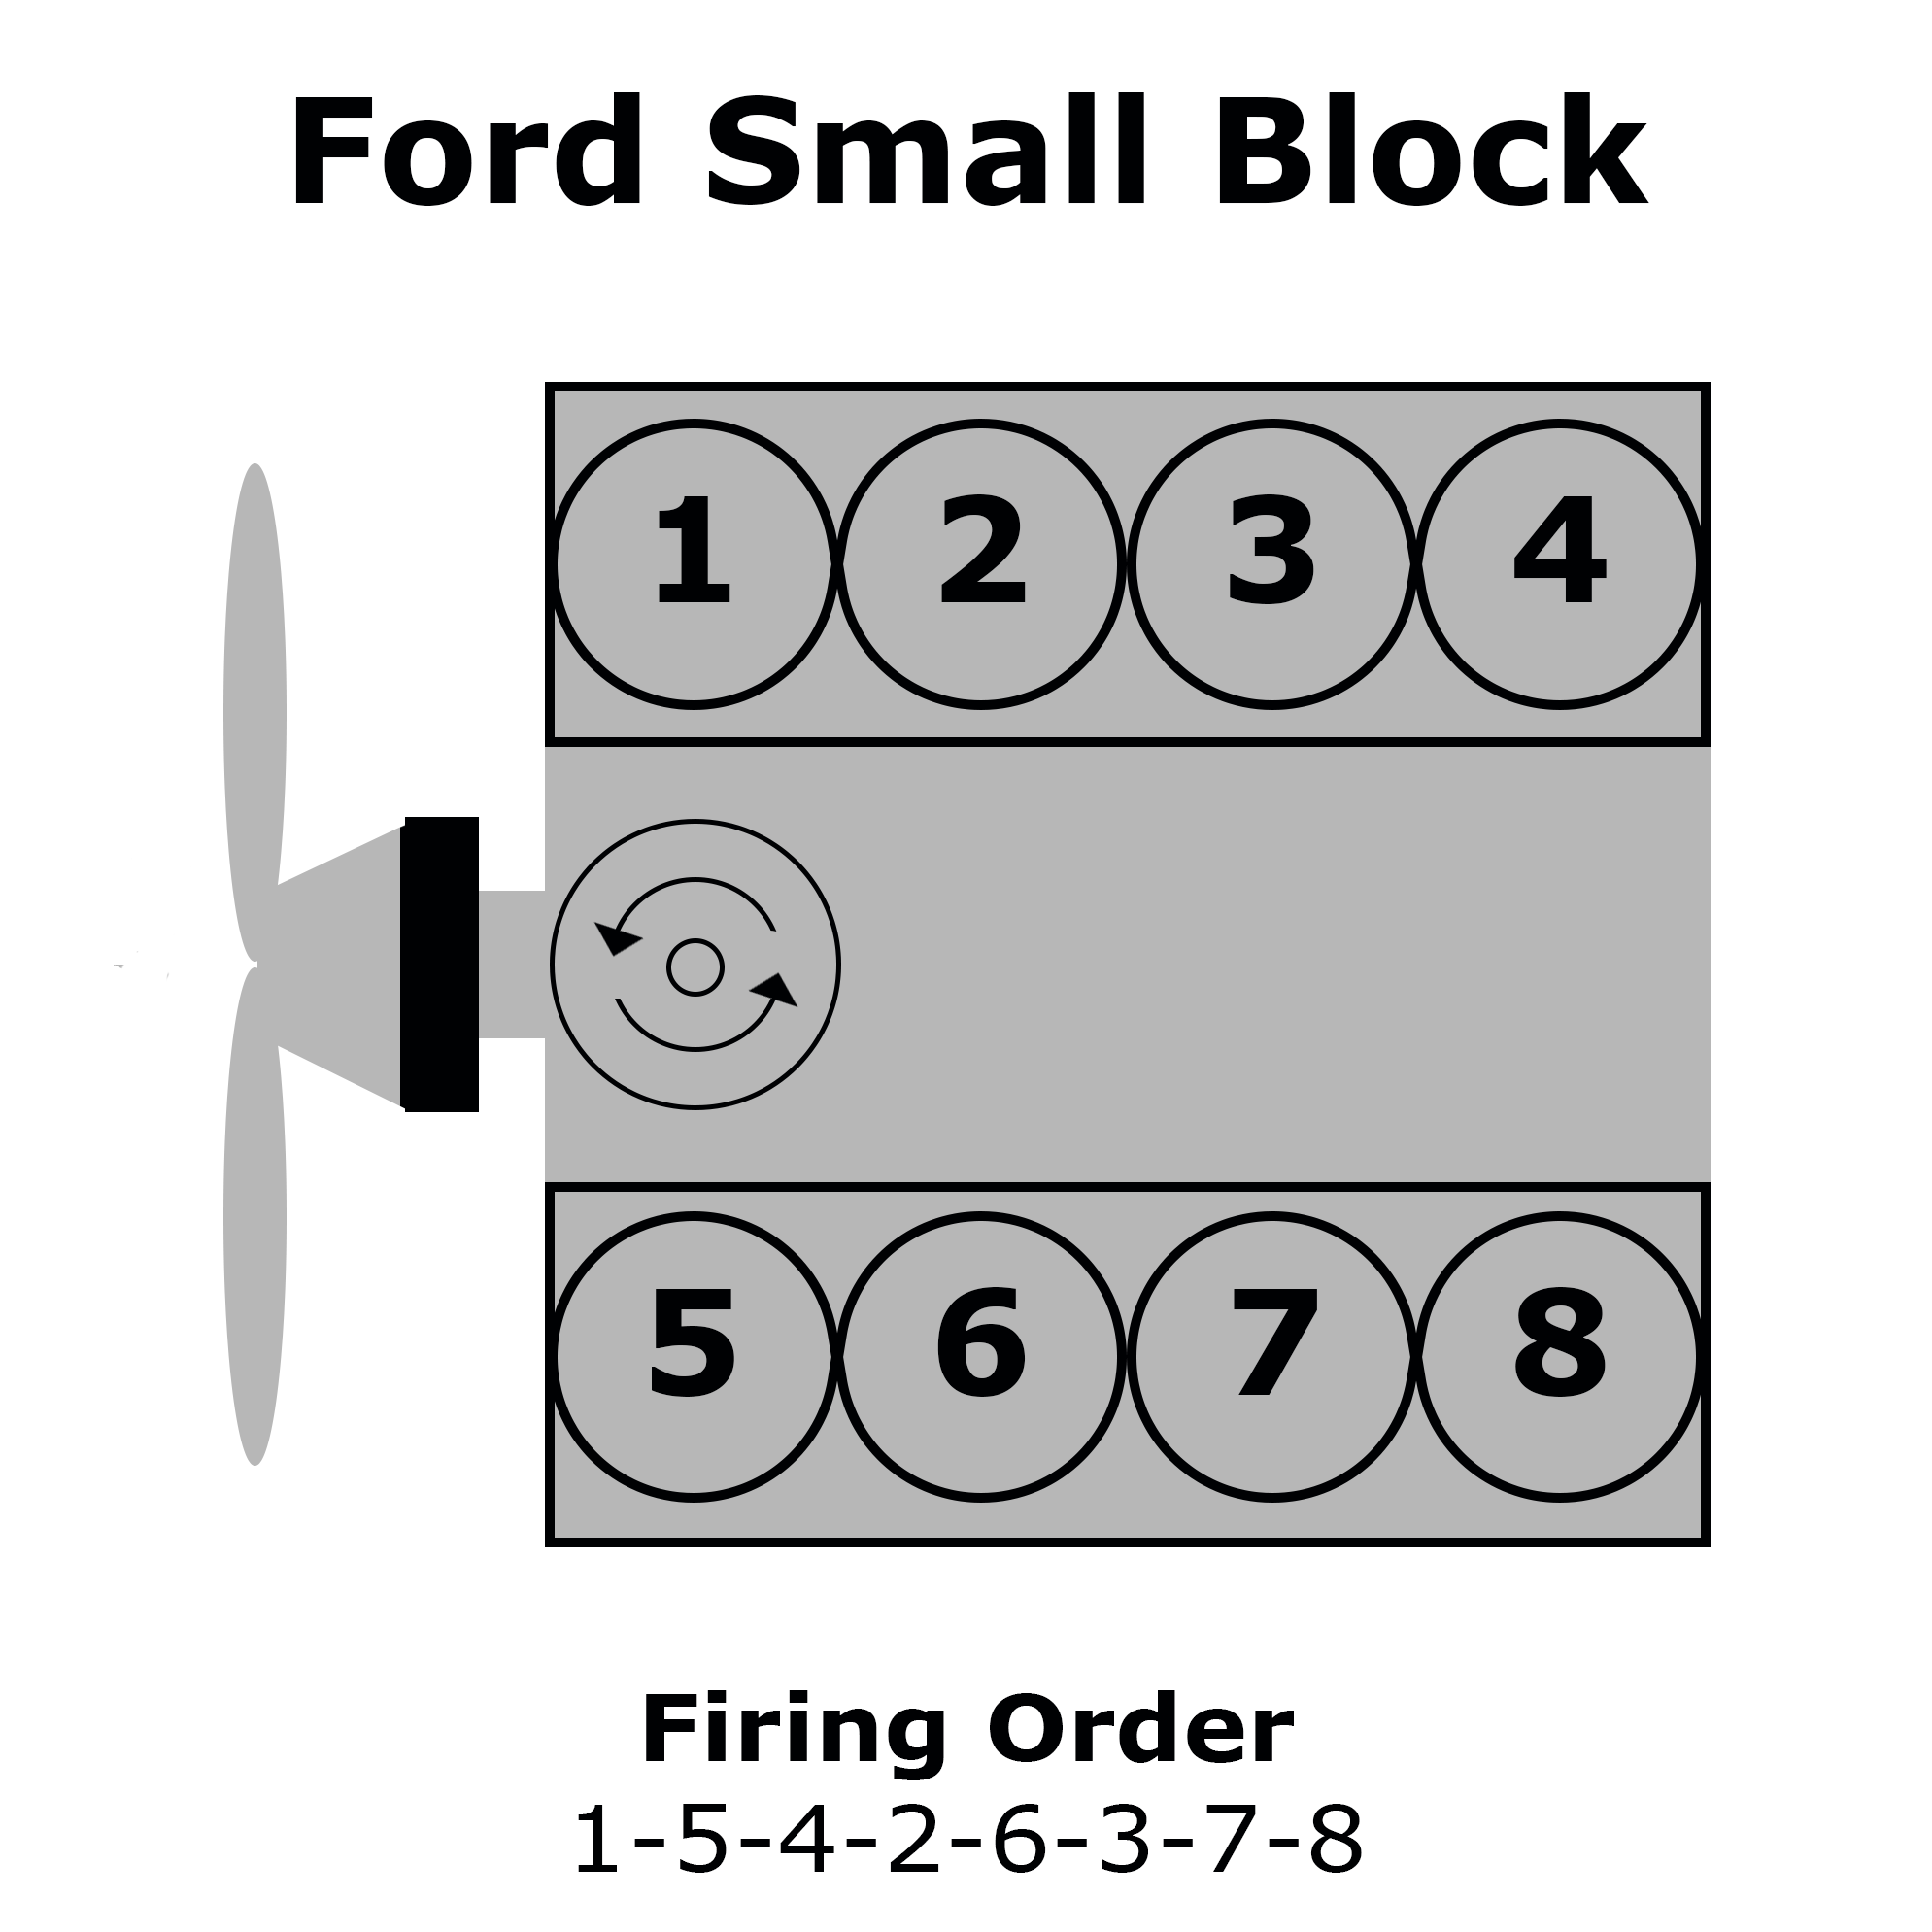 Ford Small Block Firing Order